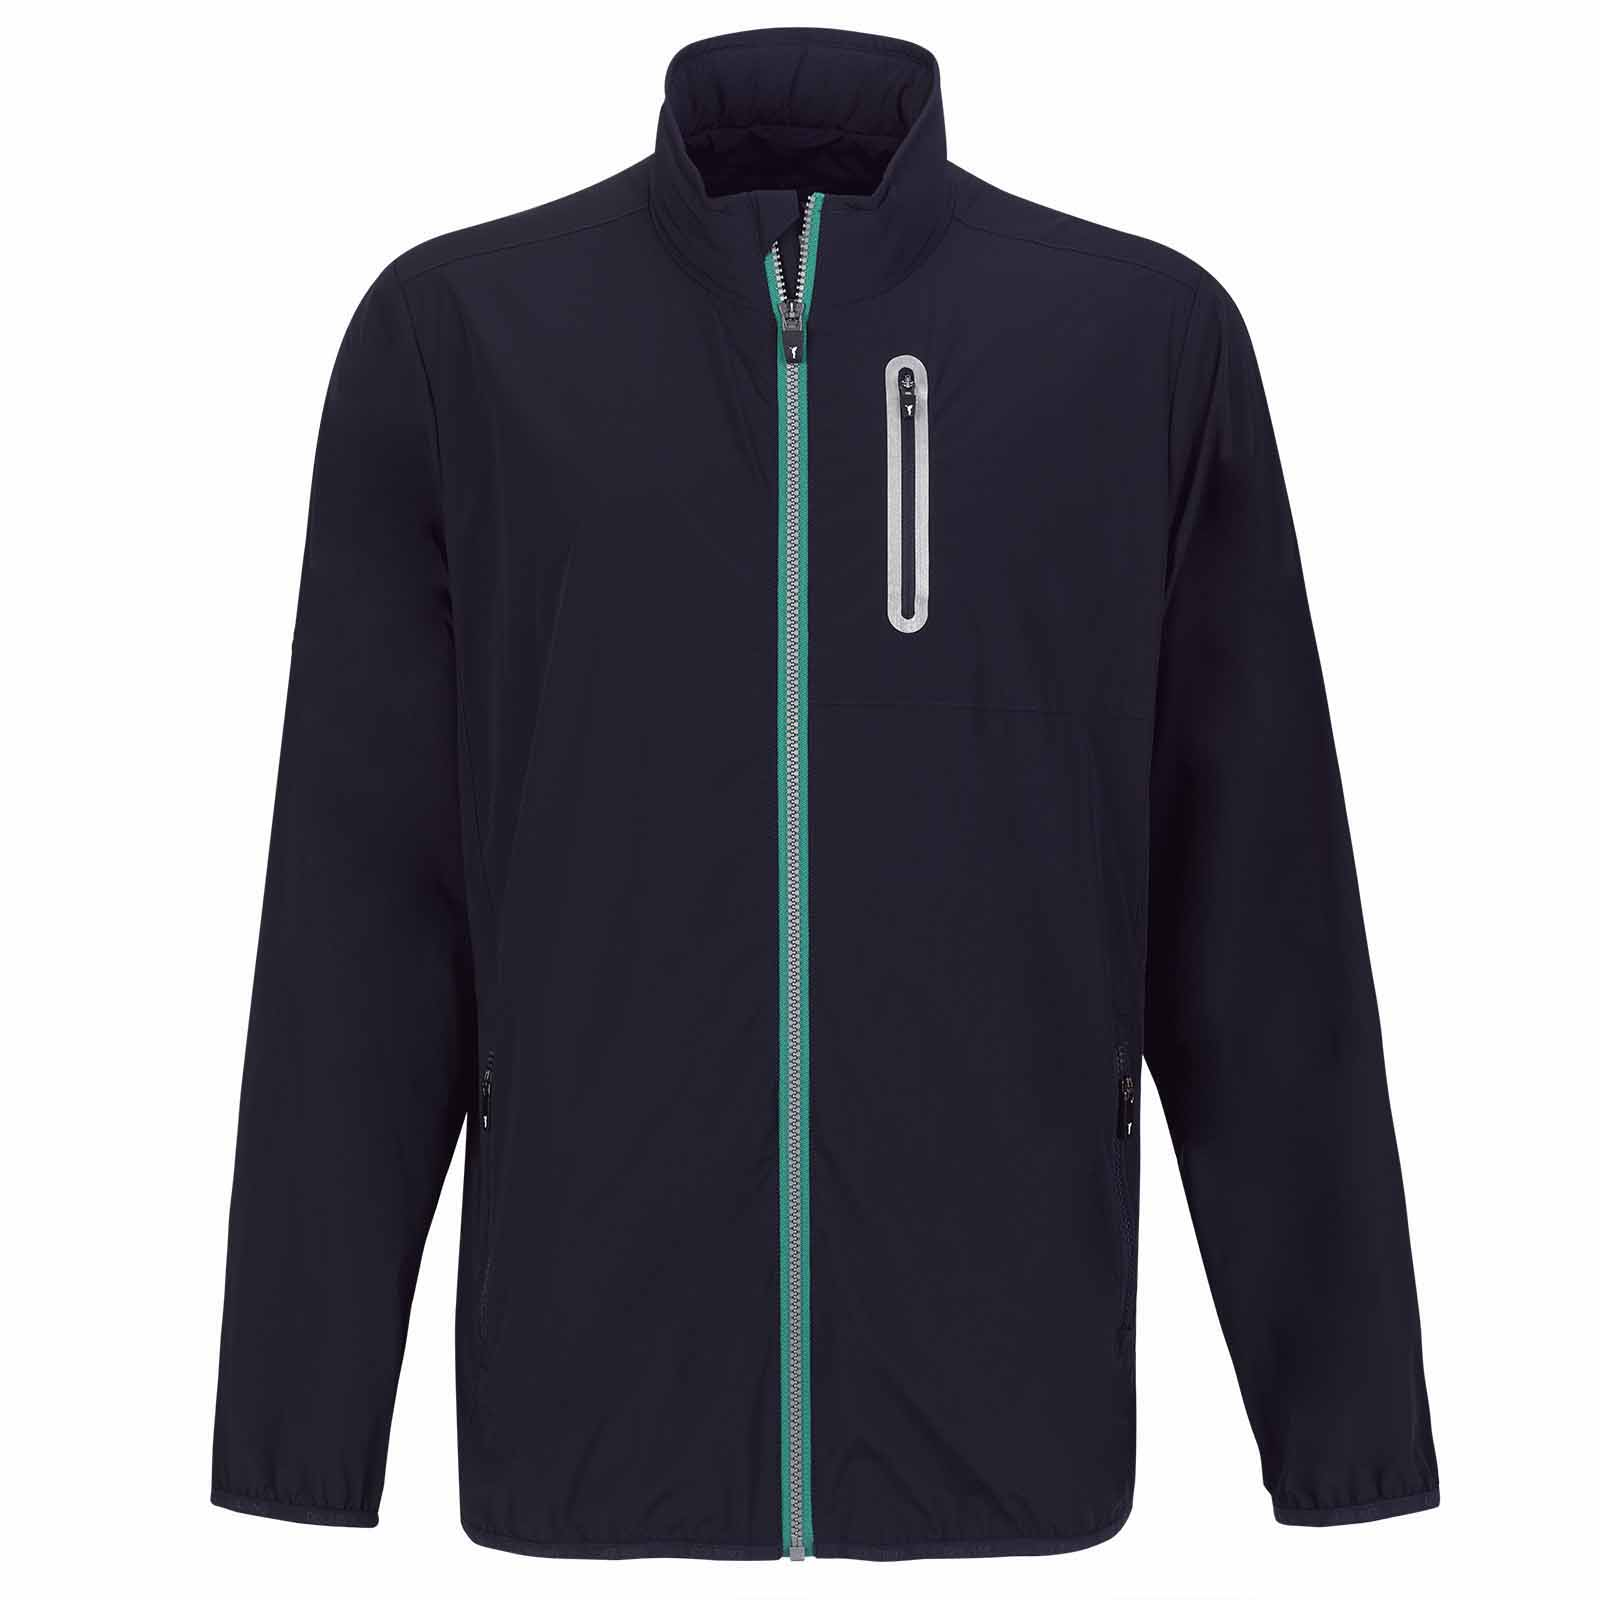 Herren Golfjacke mit Stretch Komfort in Pro-Look und Comfortable Fit